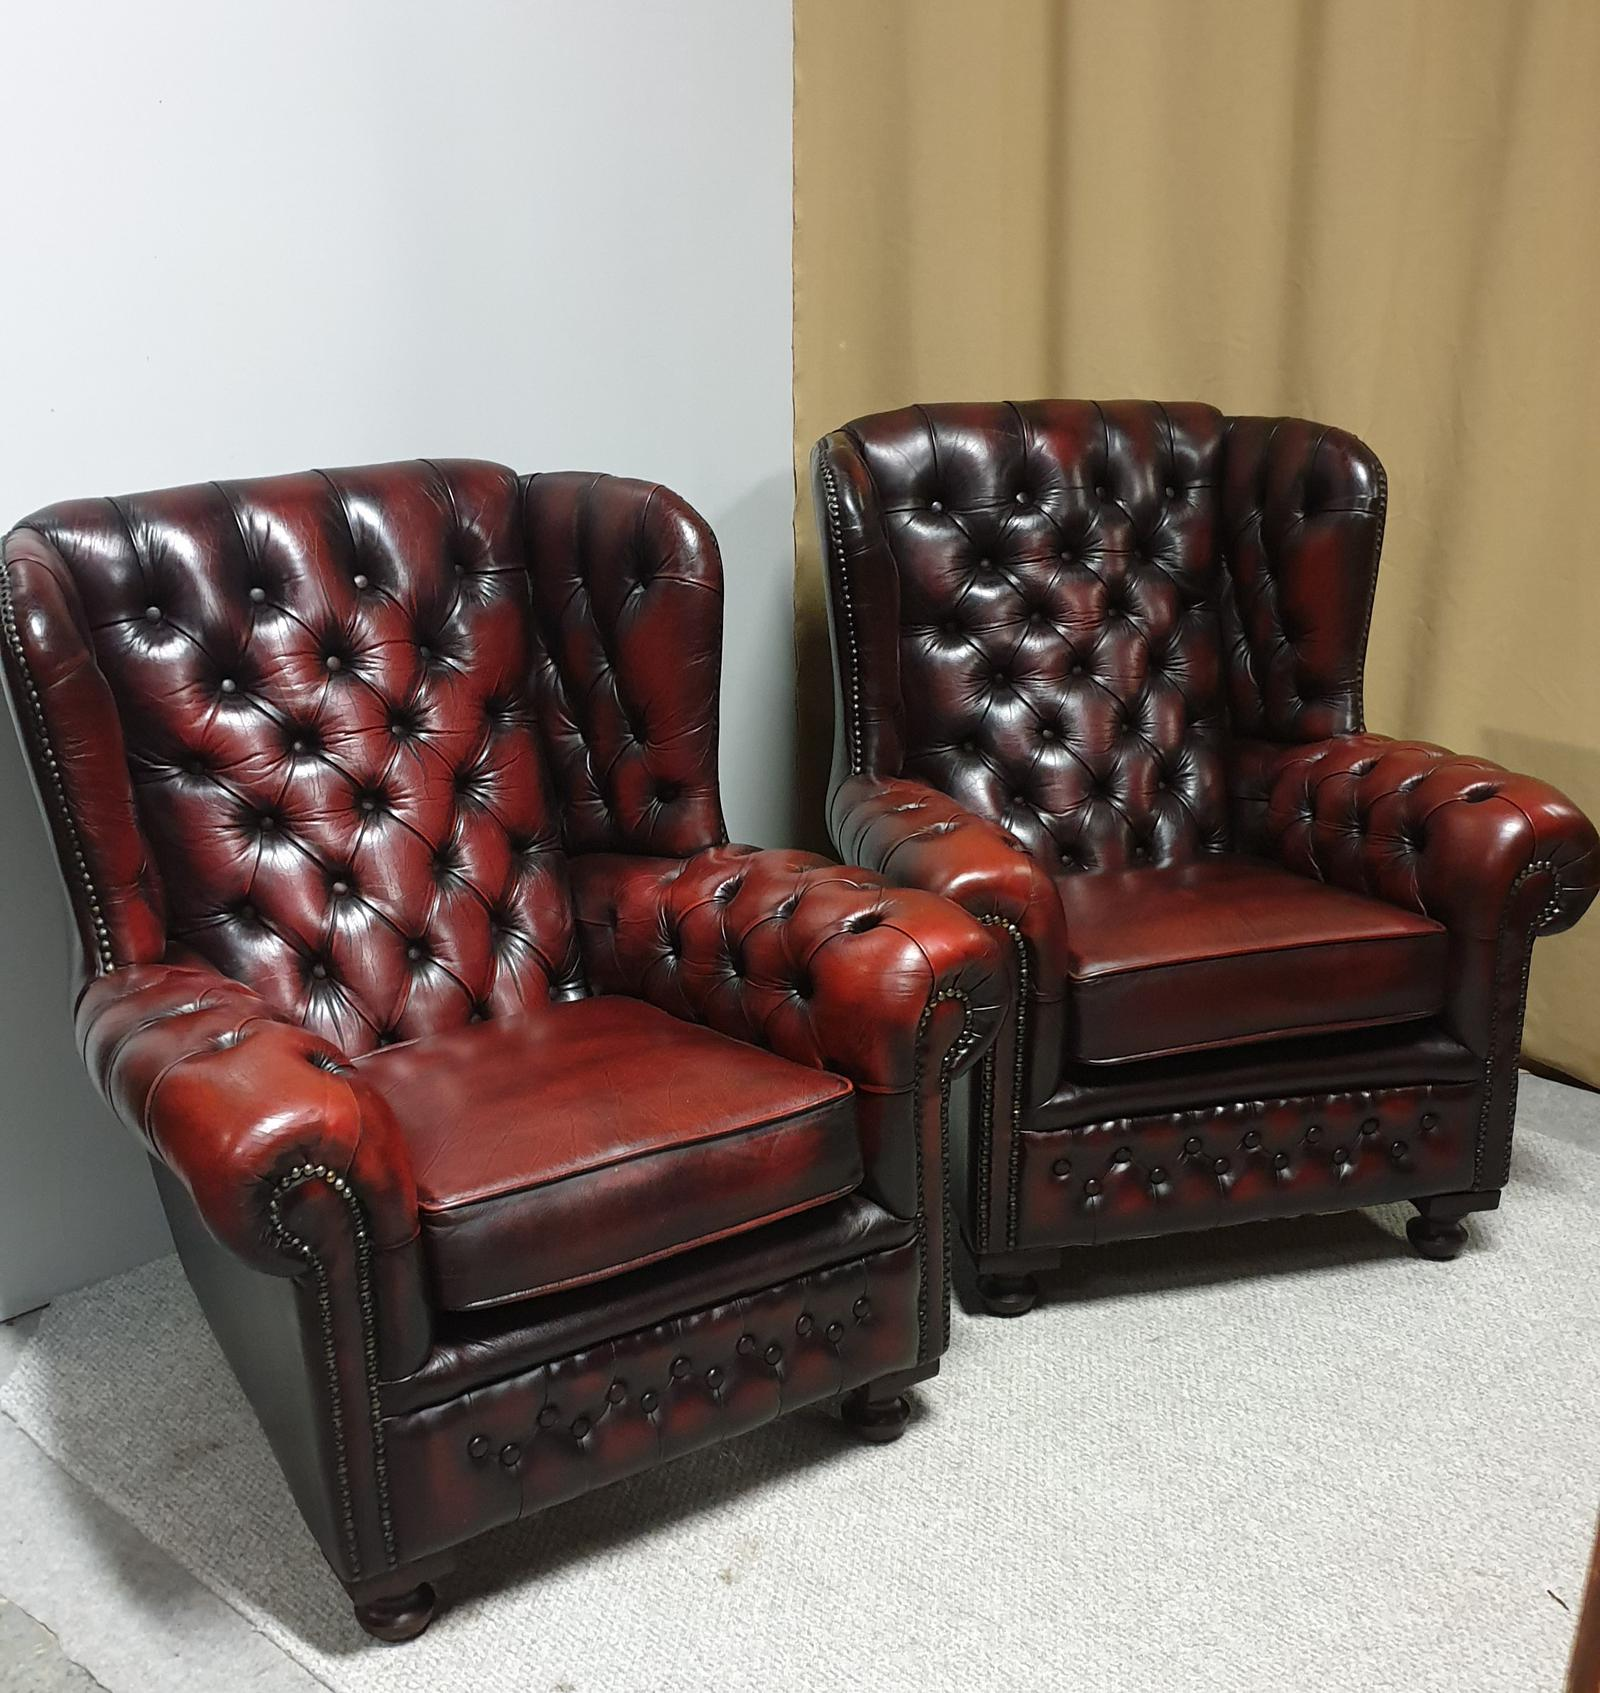 Superb Pair of Leather Wing Armchairs (1 of 1)